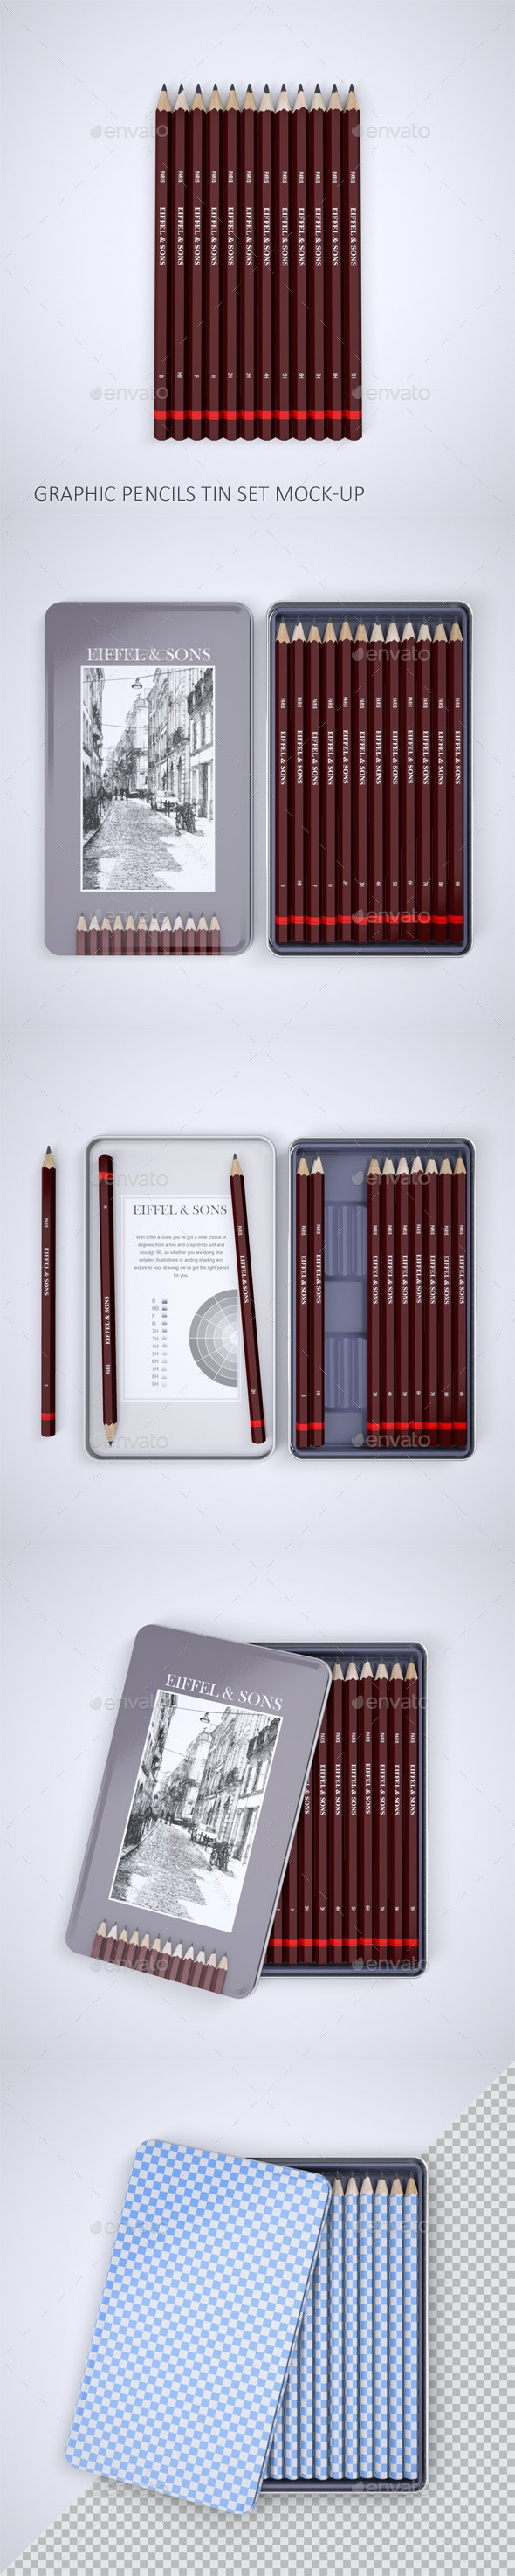 Graphic Pencils Tin Set Mock-Up - Stationery Print